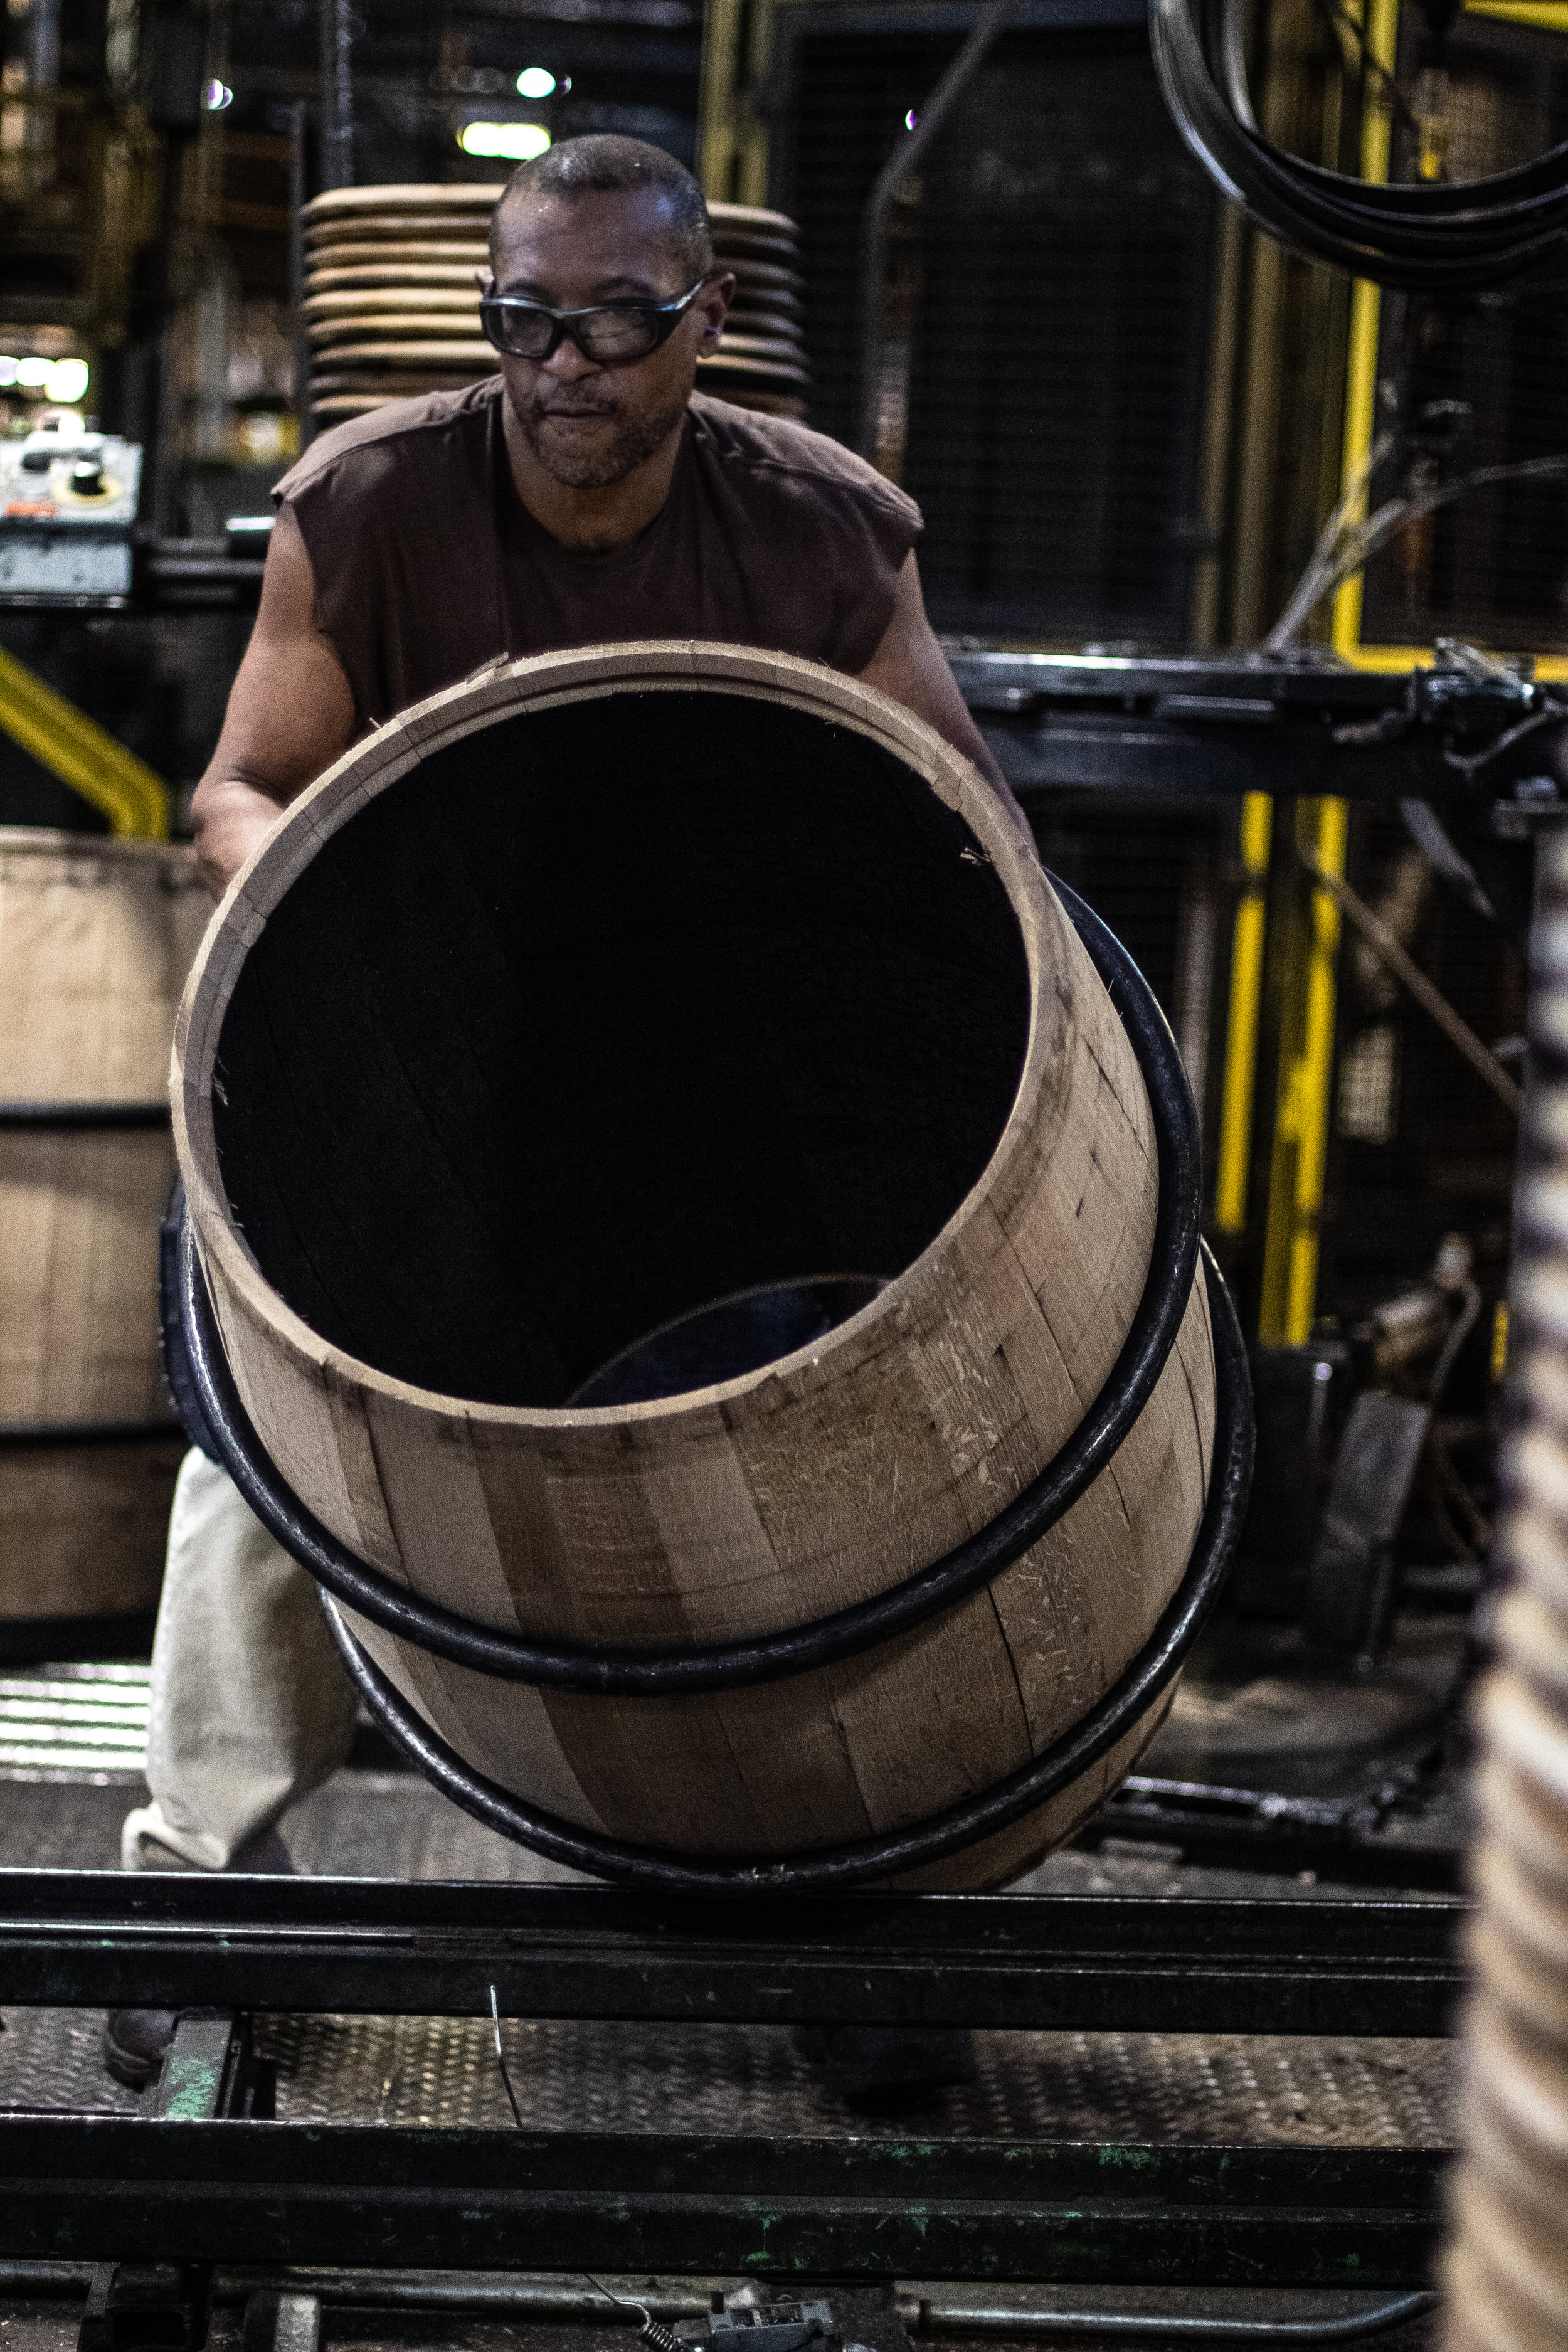 A worker, rolling a recently charred barrel to its next station.